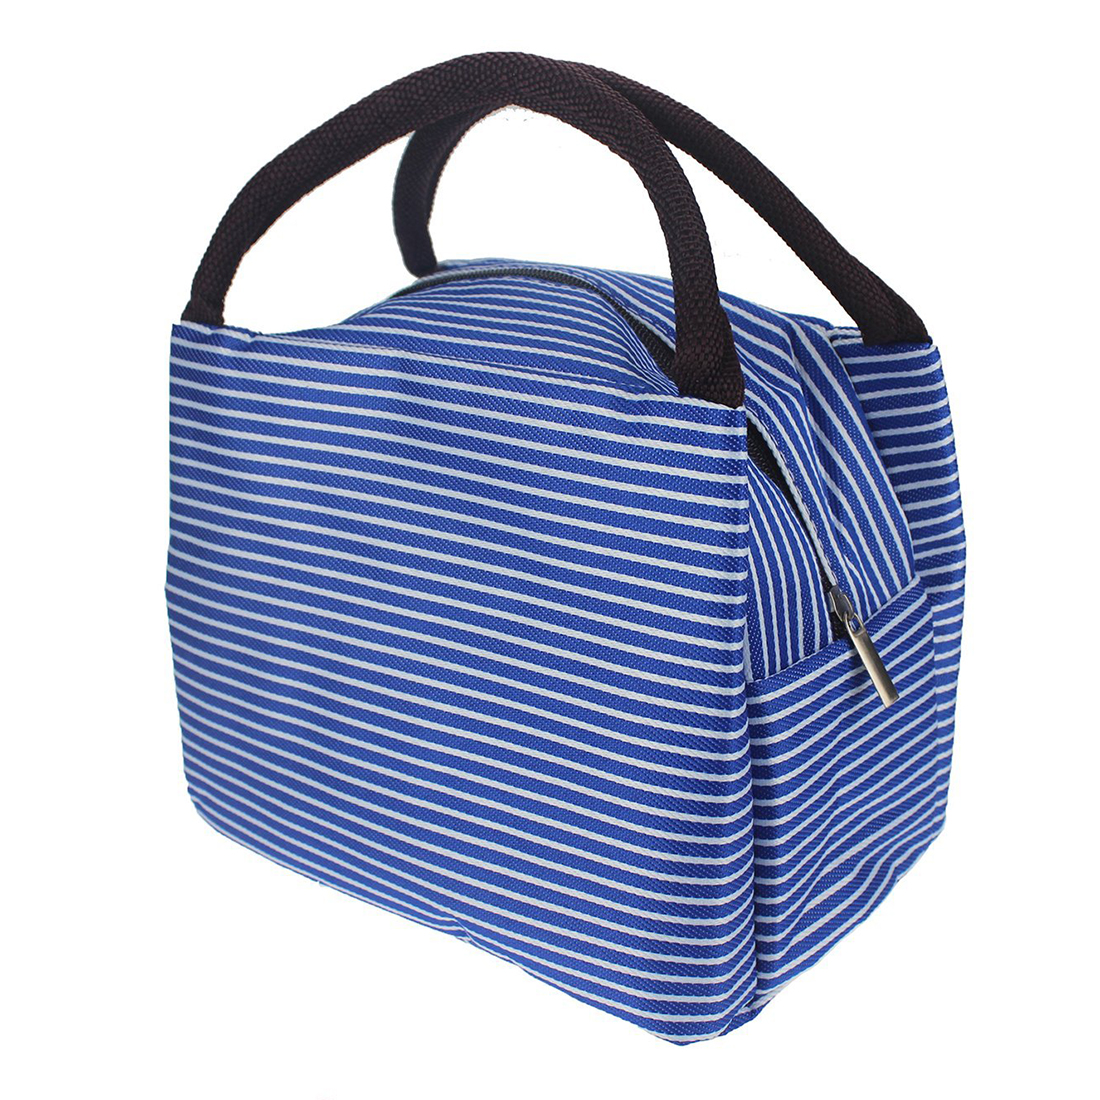 Cooler Insulated Bag, Insulated Lunch Box Tote Bag Unisex Lunch Bags For Work tote bags for work